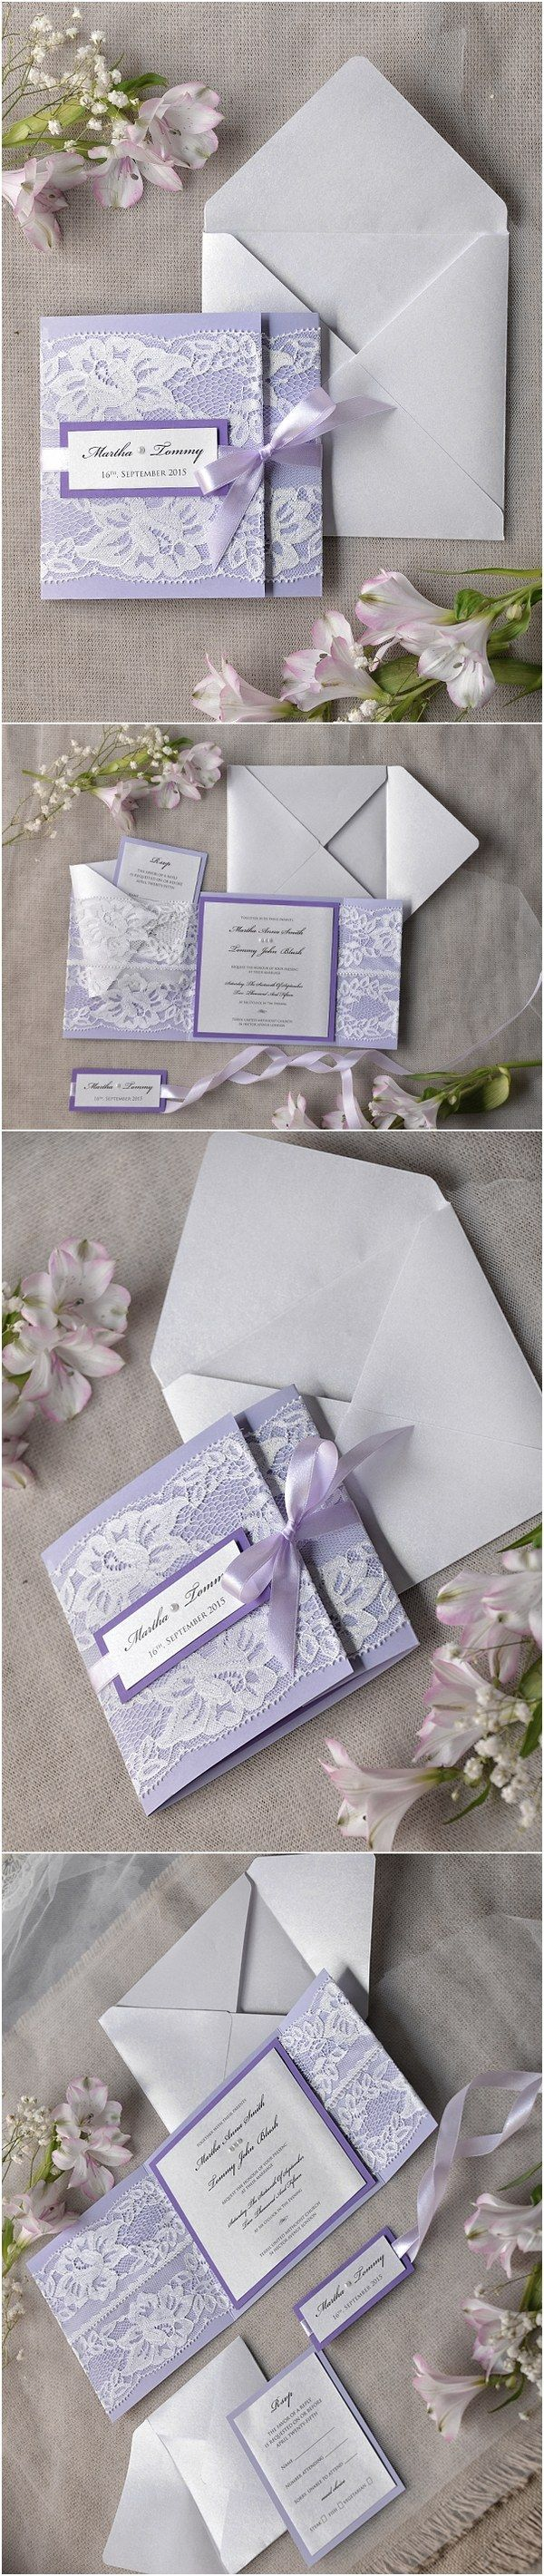 Vintage lavender lace wedding invitations #weddingideas #purpleideas